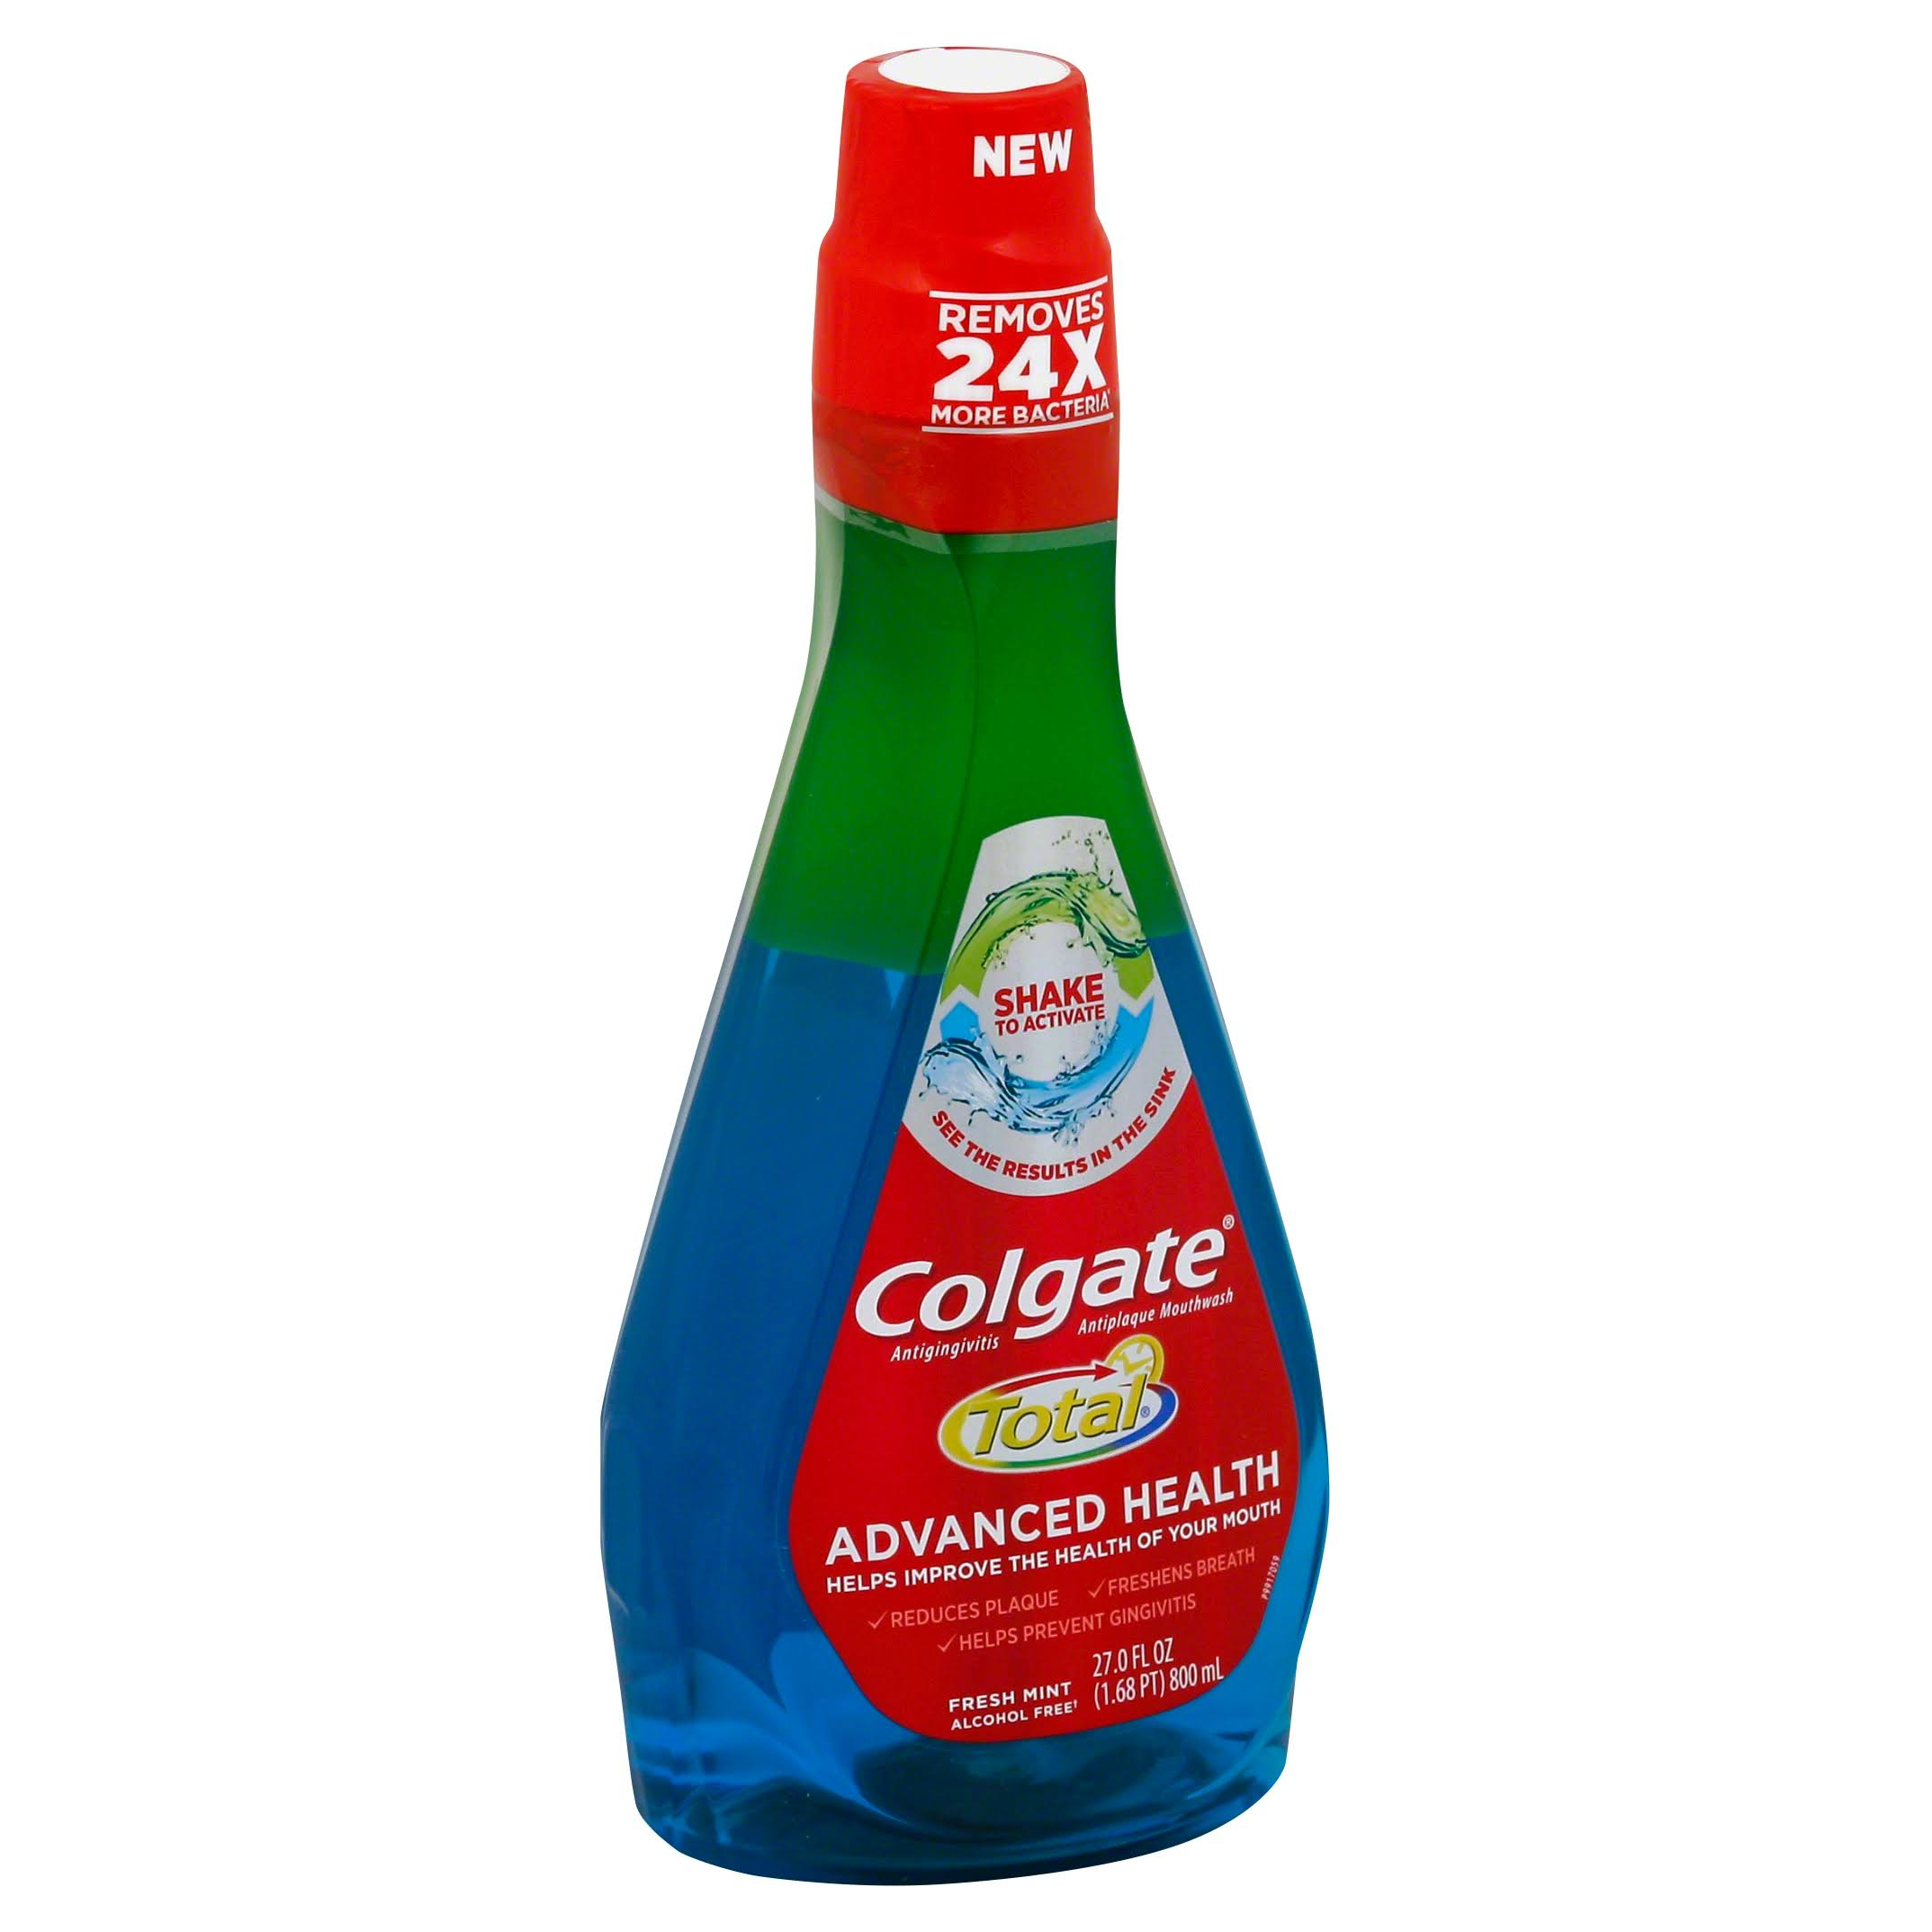 Colgate Total Advanced Health Fresh Mint Mouthwash - 800ml